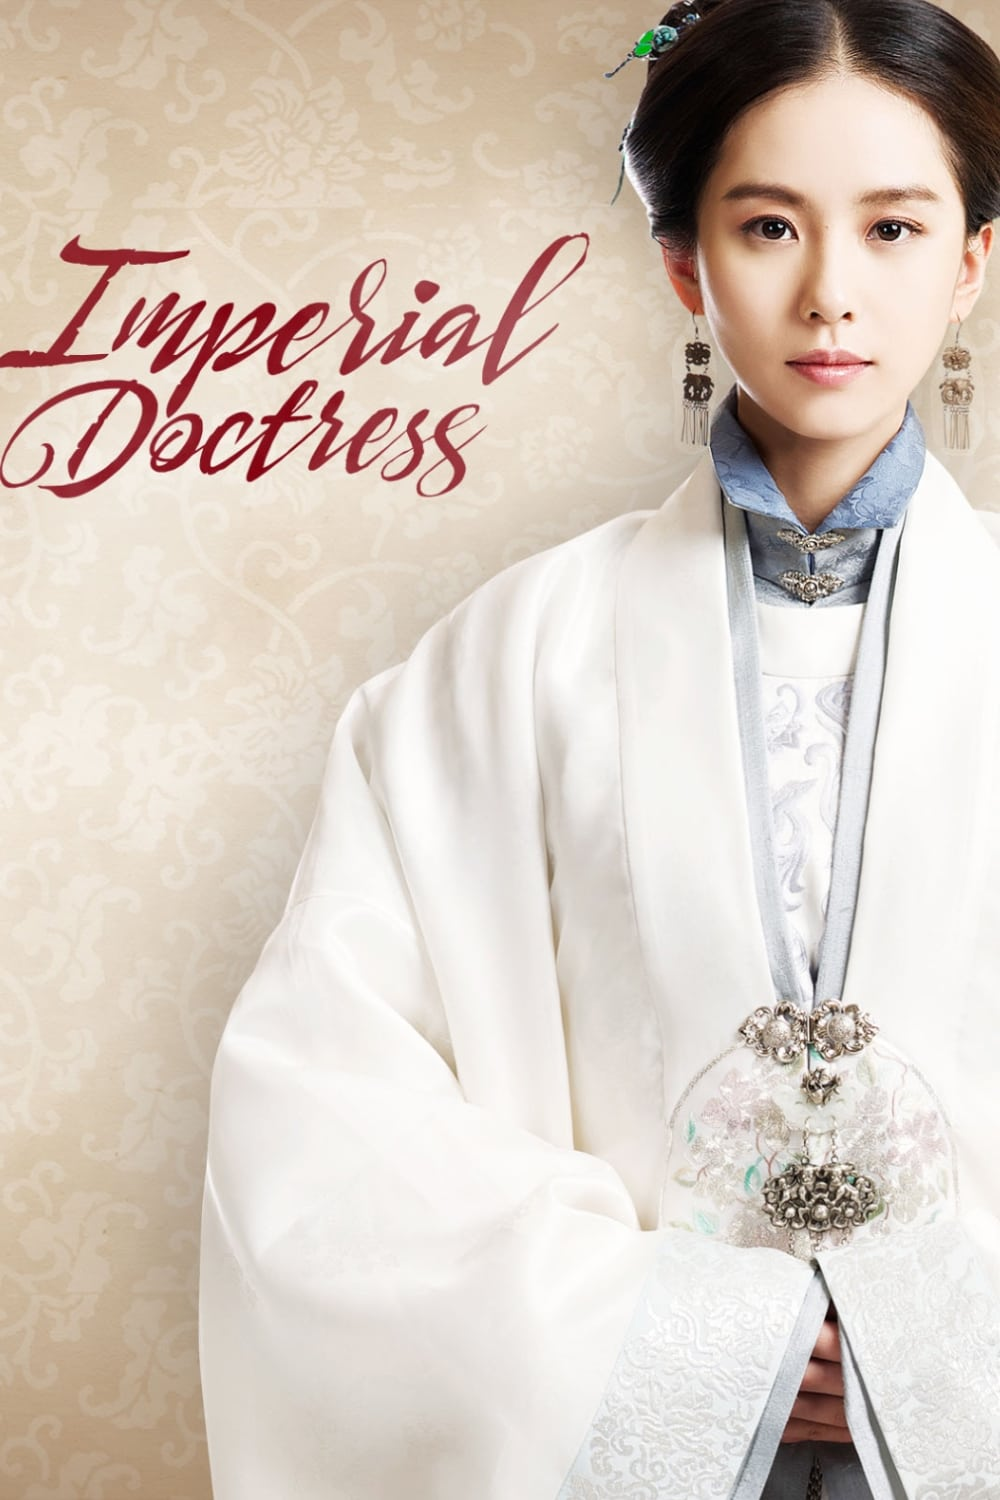 The Imperial Doctress (2016)